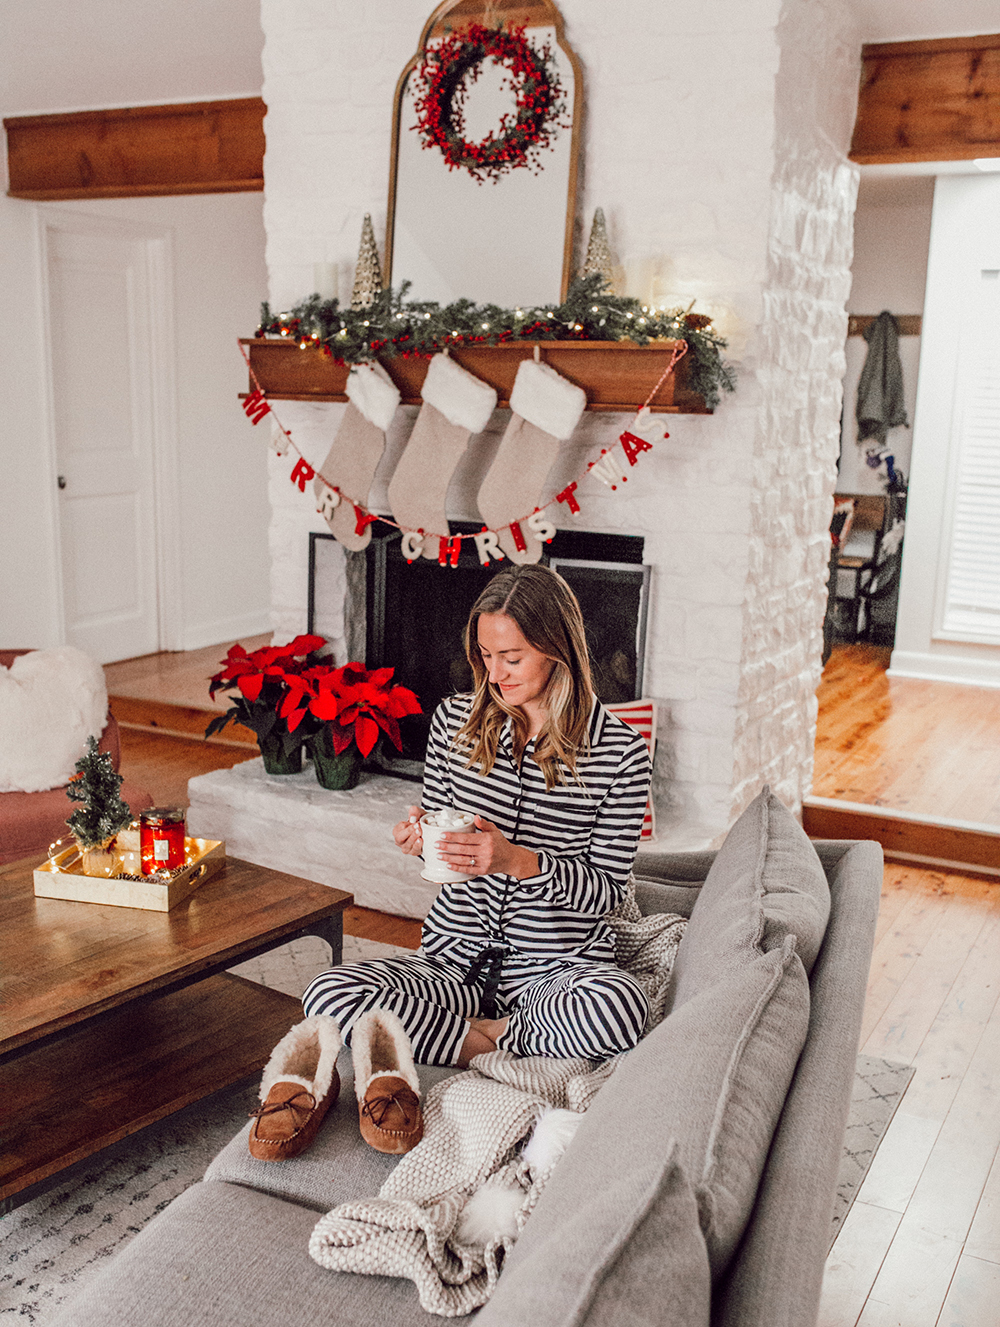 livvyland-blog-olivia-watson-ugg-slippers-cozy-morning-home-kate-spade-striped-pajamas-1